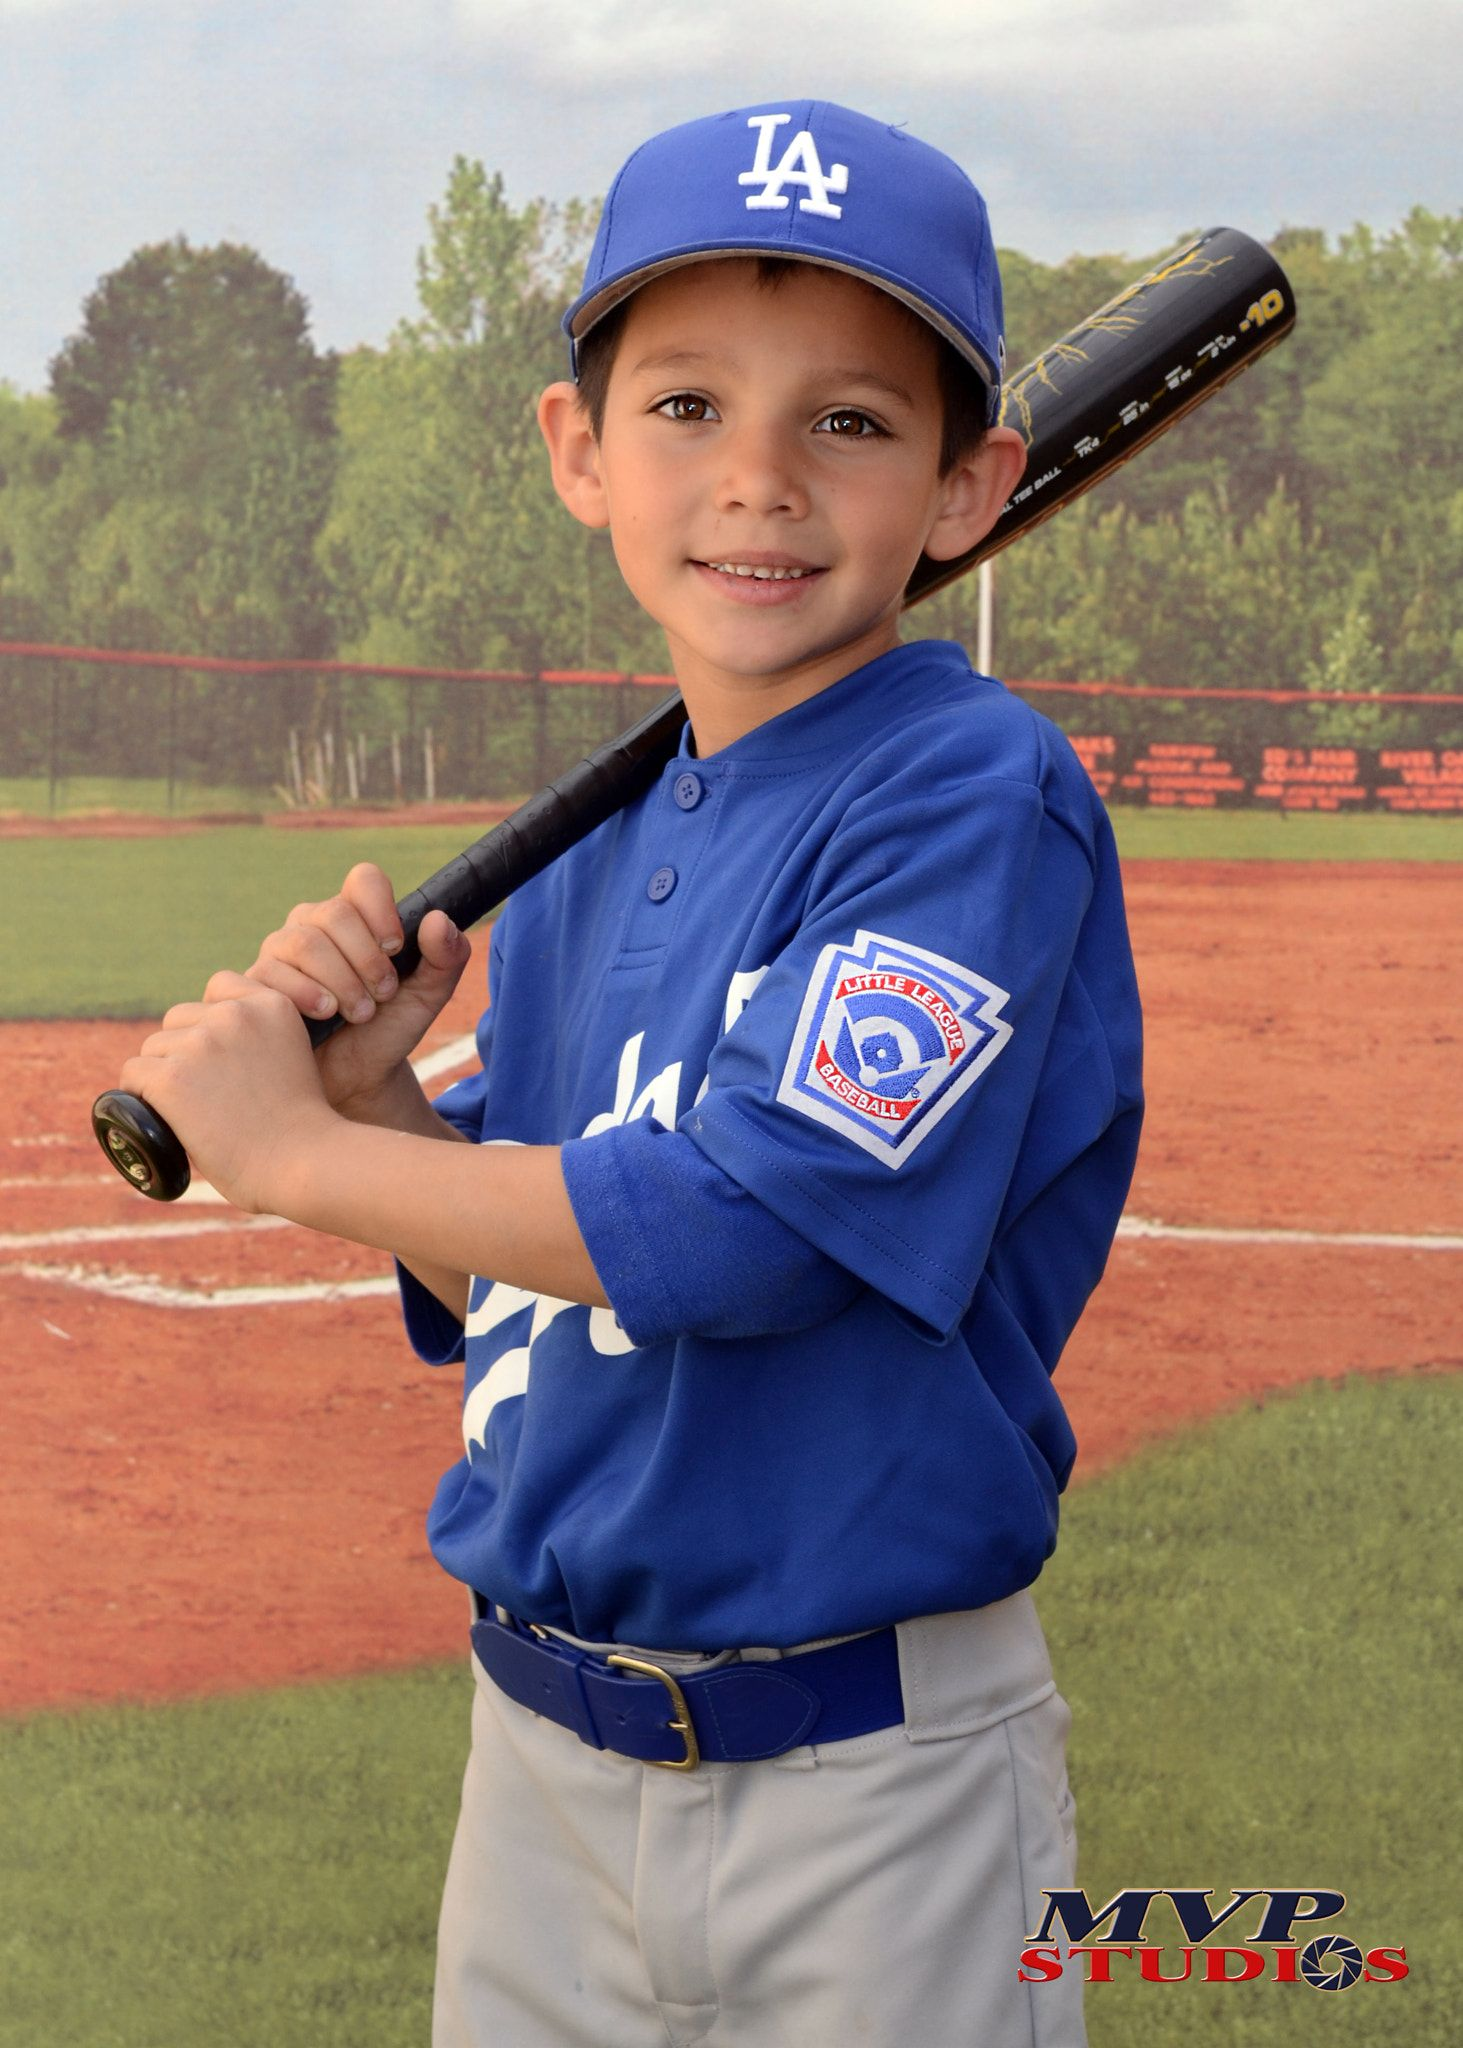 Textbook Youth Baseball Photo Kids Sports Photography Baseball Team Pictures Sports Team Photography